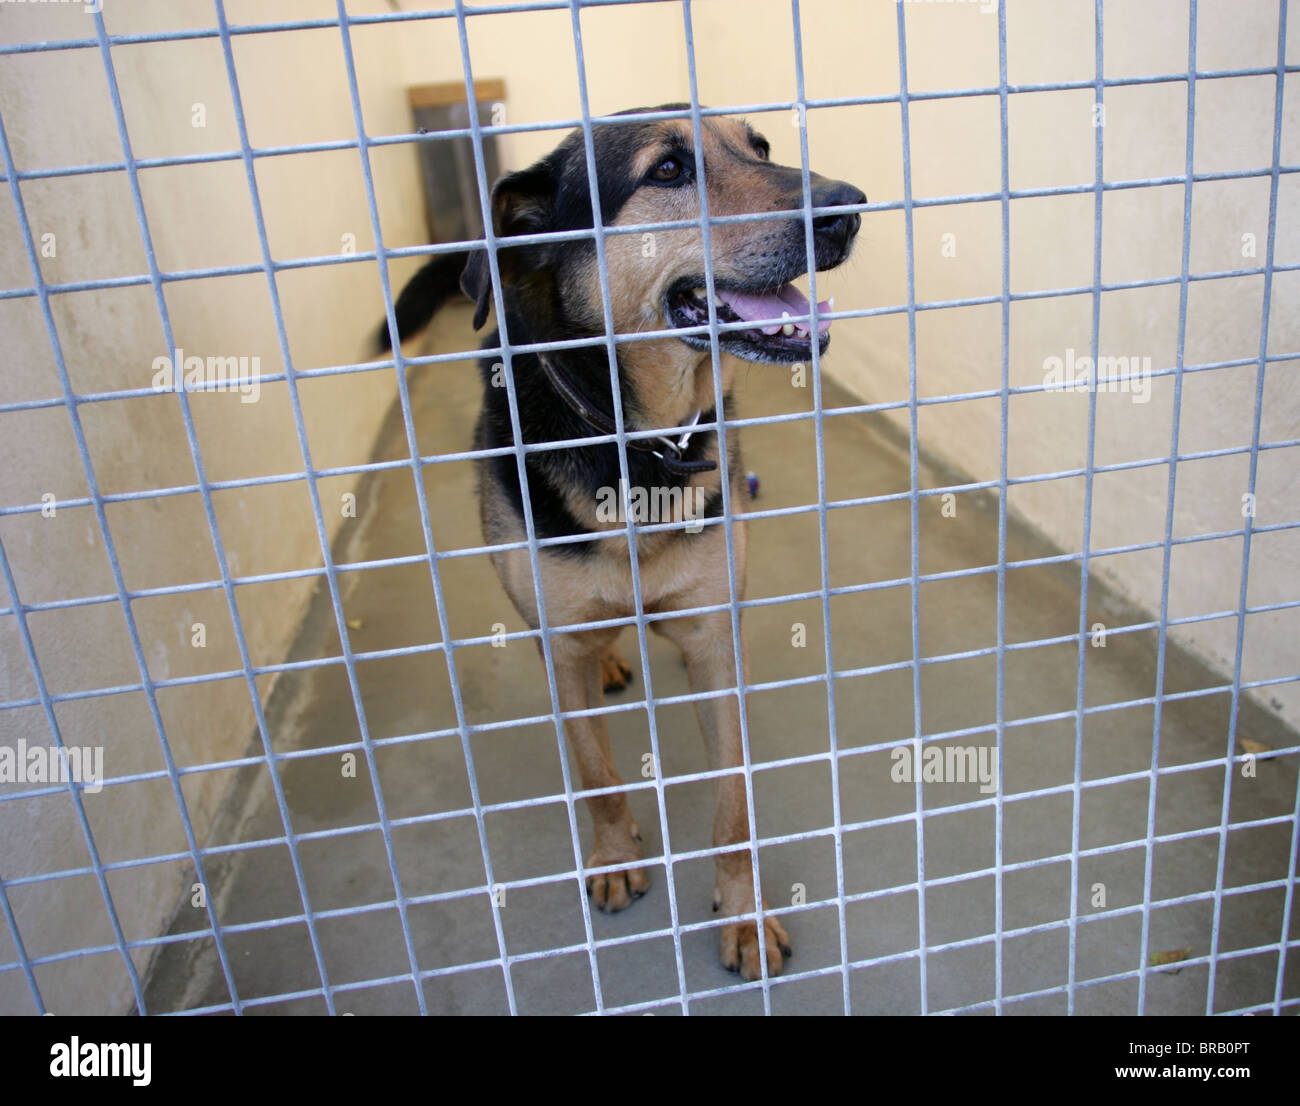 A stray dog at the RSPCA kennels in Great Ayton. UK - Stock Image